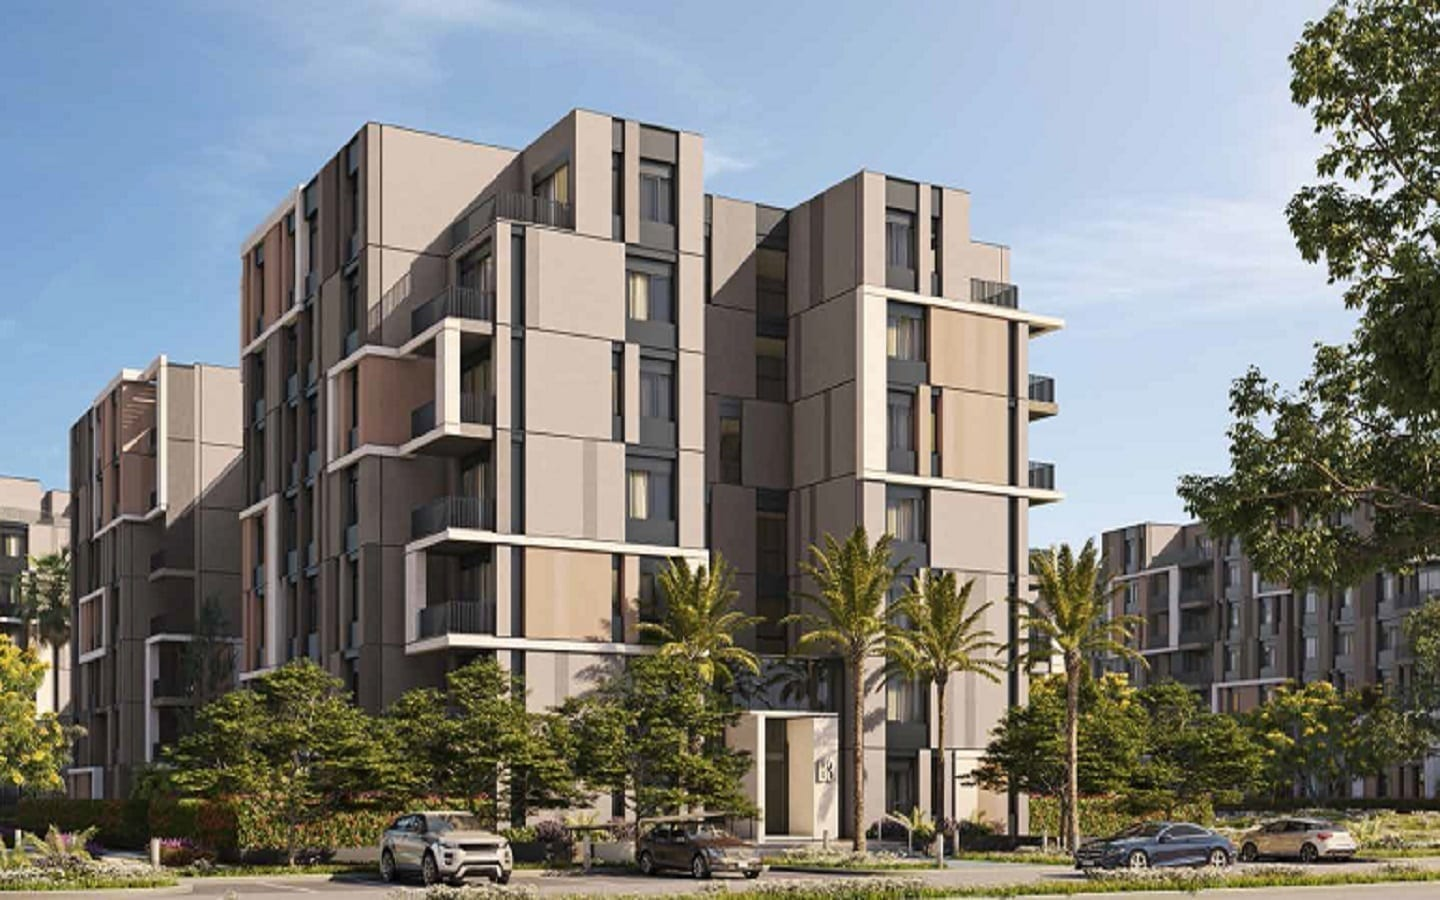 Swan Lake Residences The Phoenix New Cairo Apartments Fully Finished , HAP Hassan Allam Properties , 8 Gates Real Estate Egypt